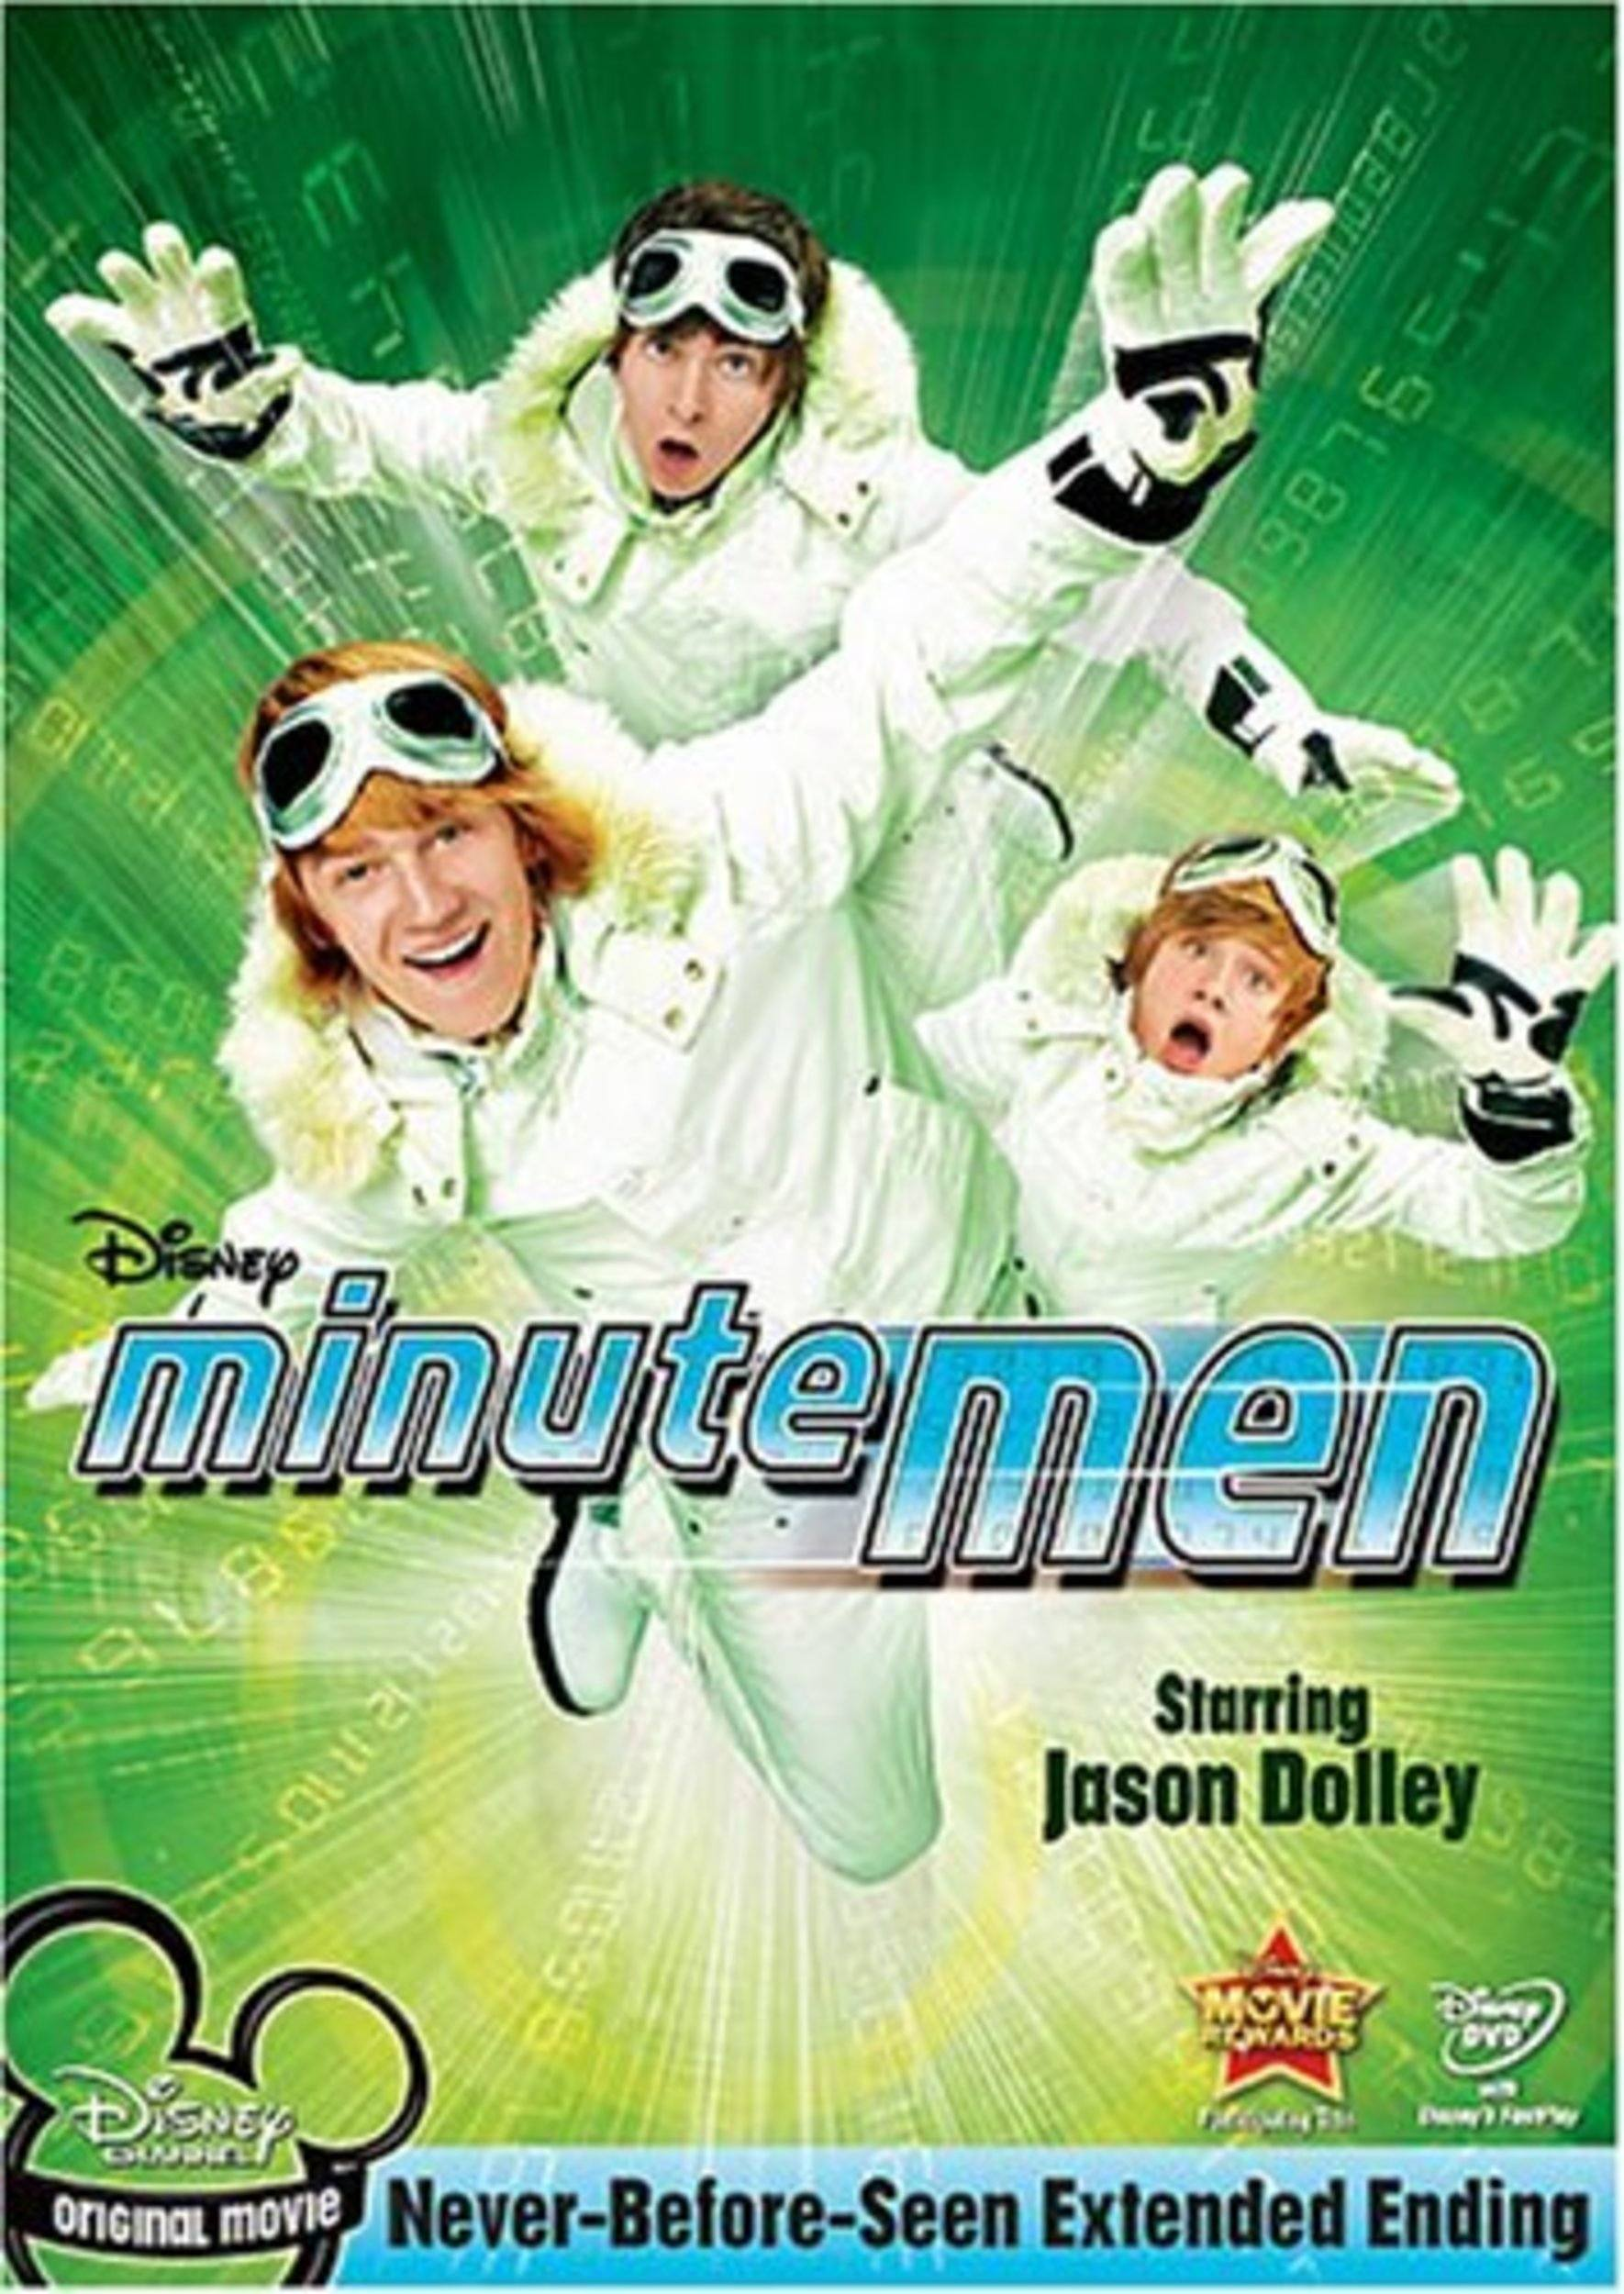 Affiche poster minutemen justiciers temps disney channel